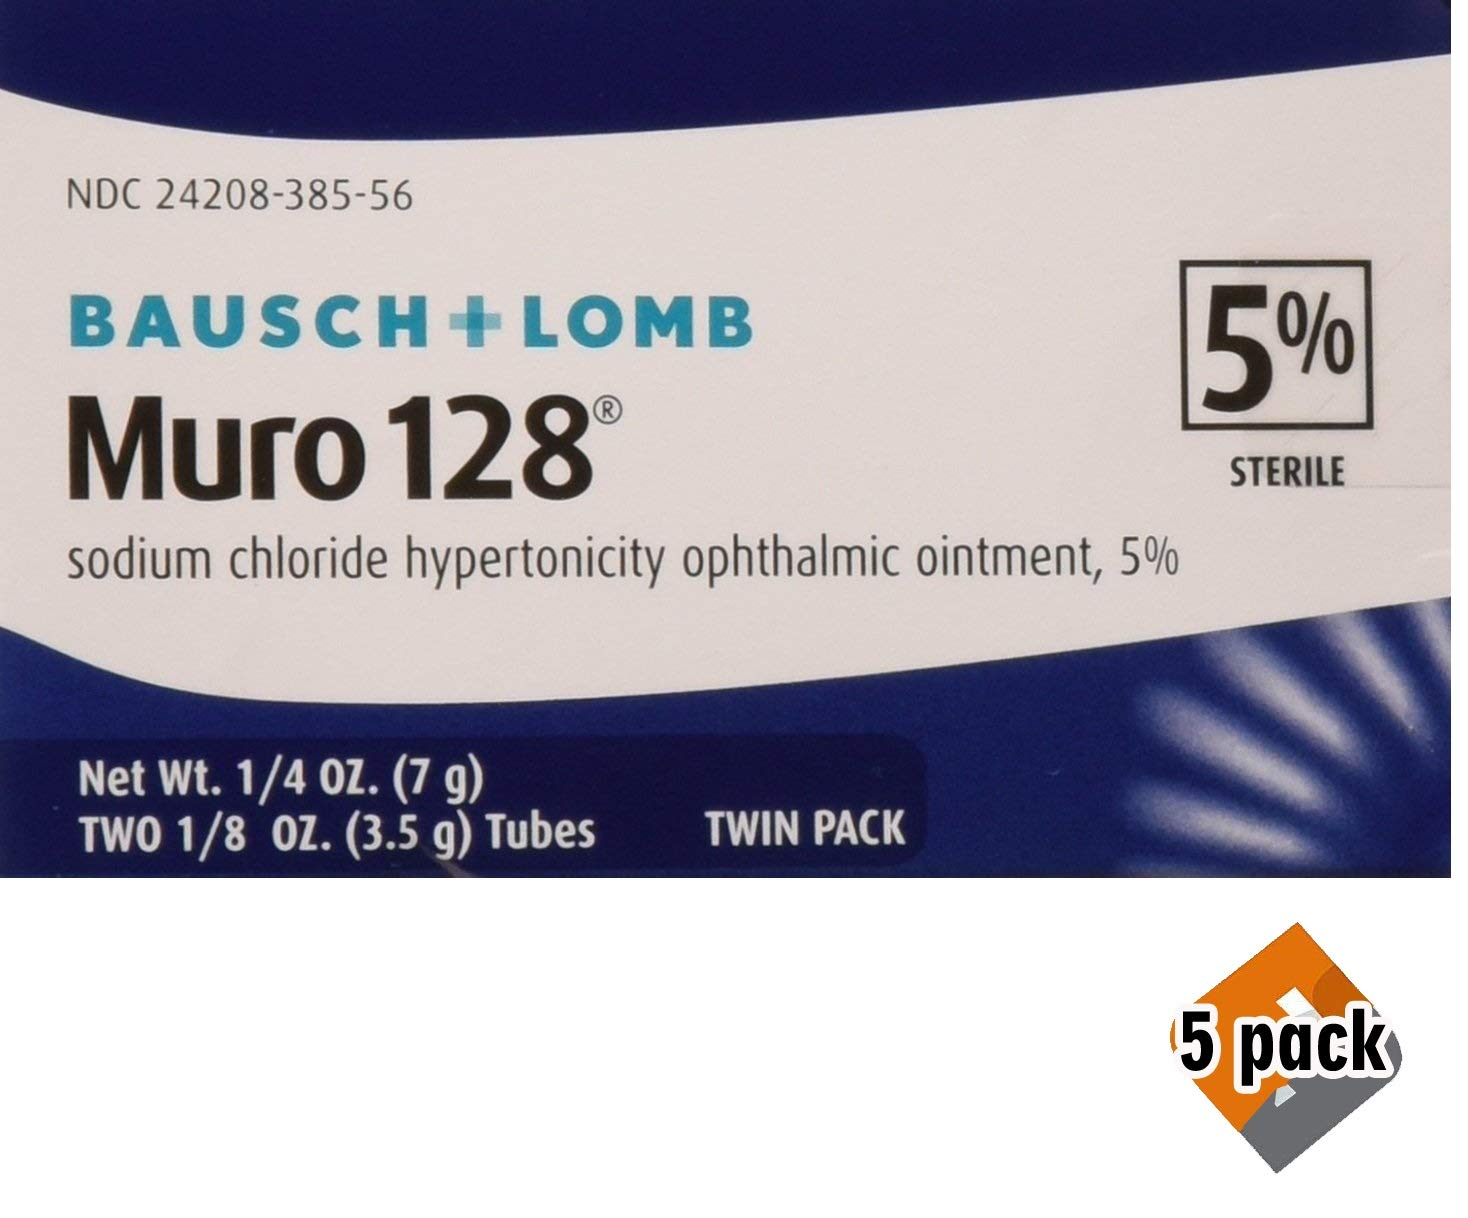 Muro 128 5 Percent 0.0 Twin Pack 2X1/8 OZ, 5 Pack (10 Count)